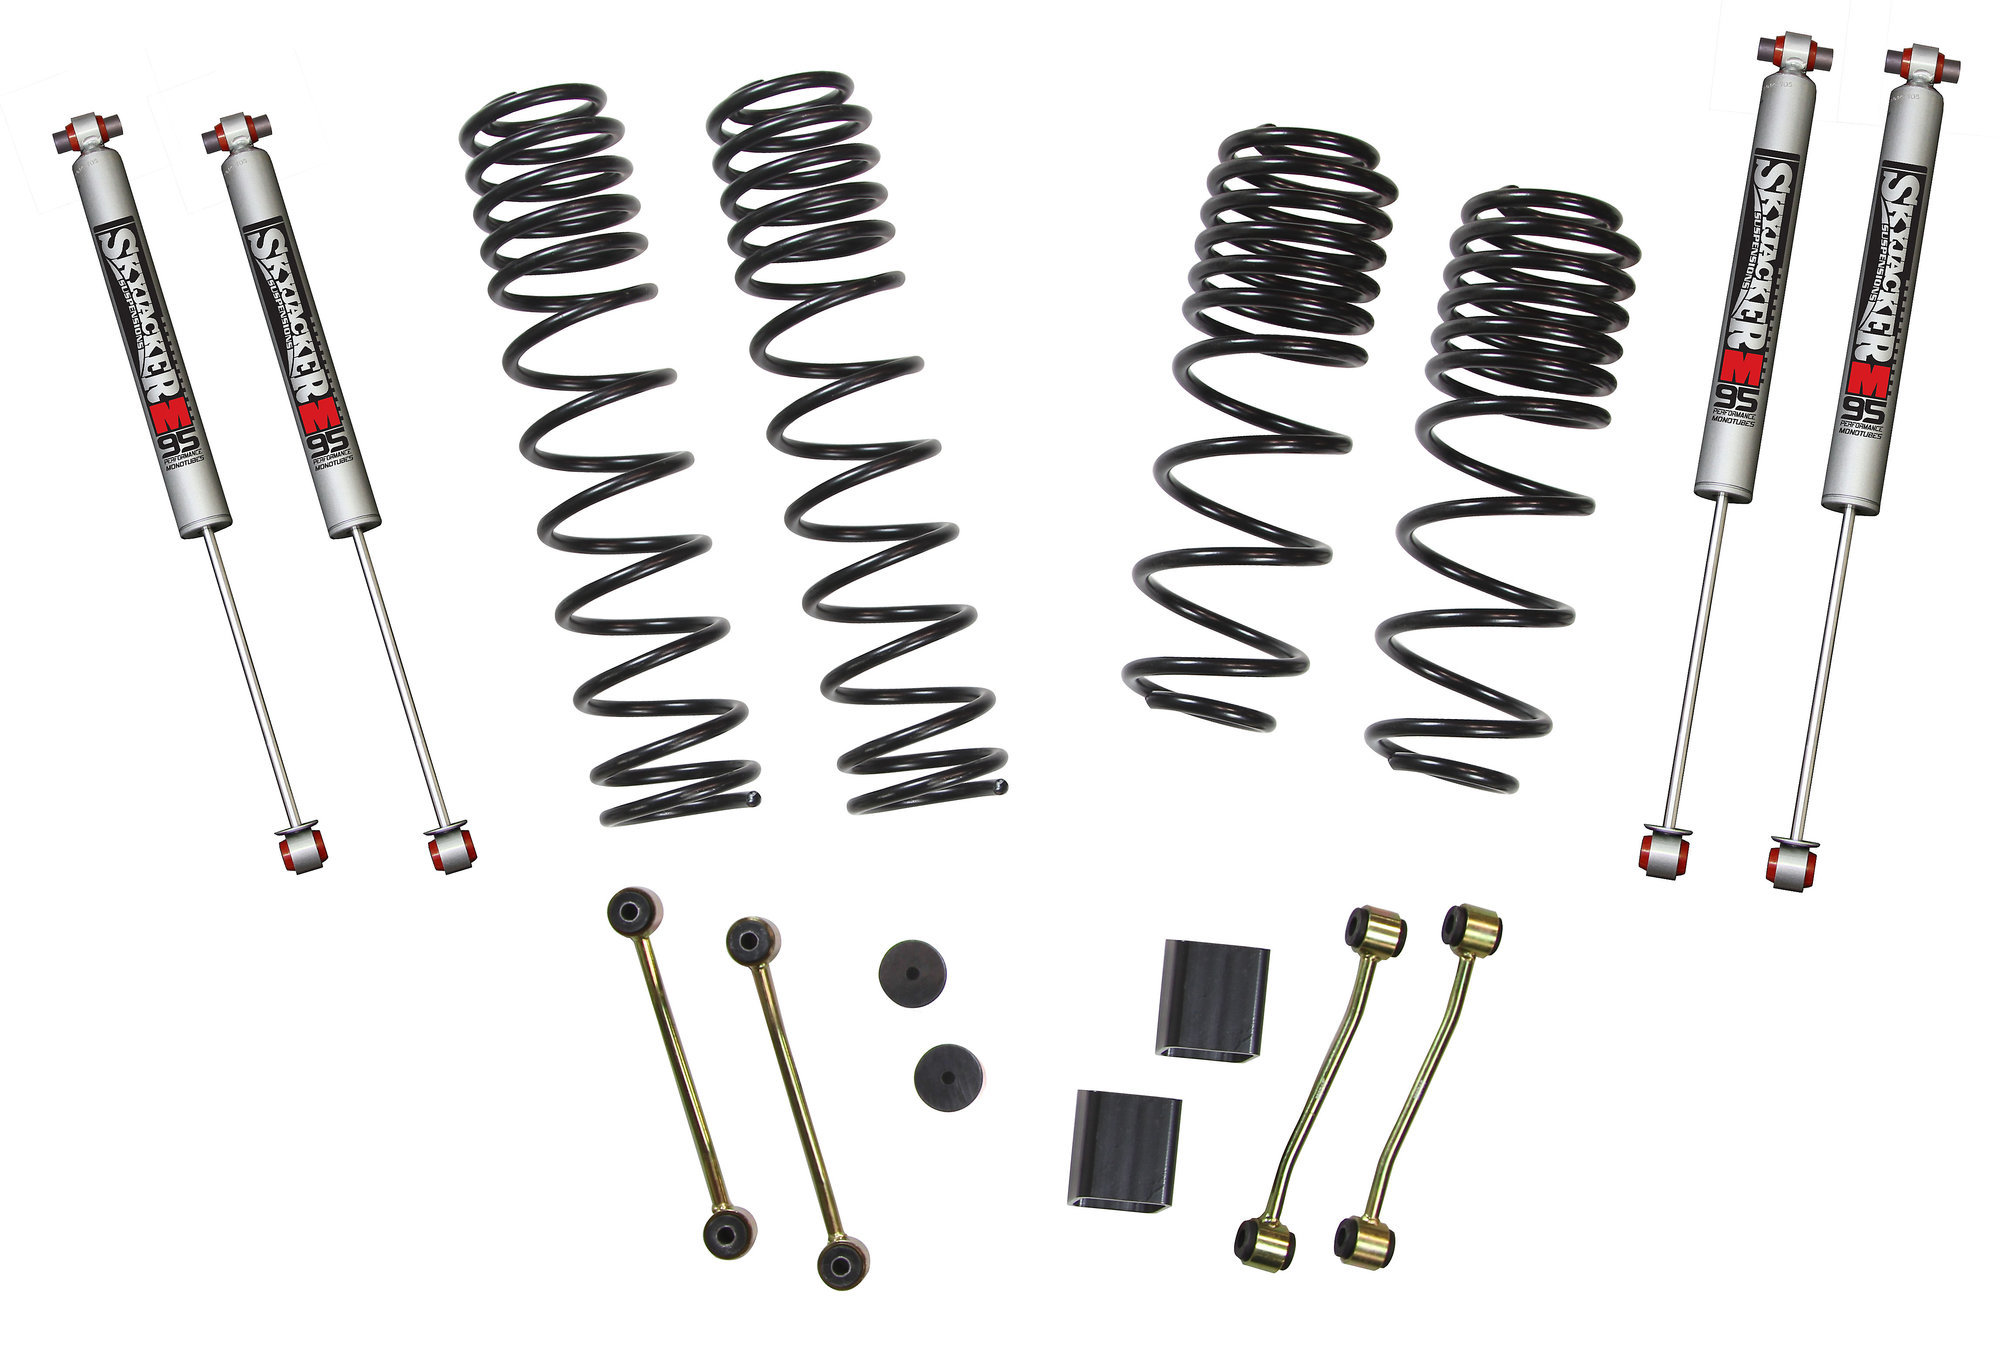 Skyjacker 2 5in Long Travel Lift Kit With M95 Shocks For